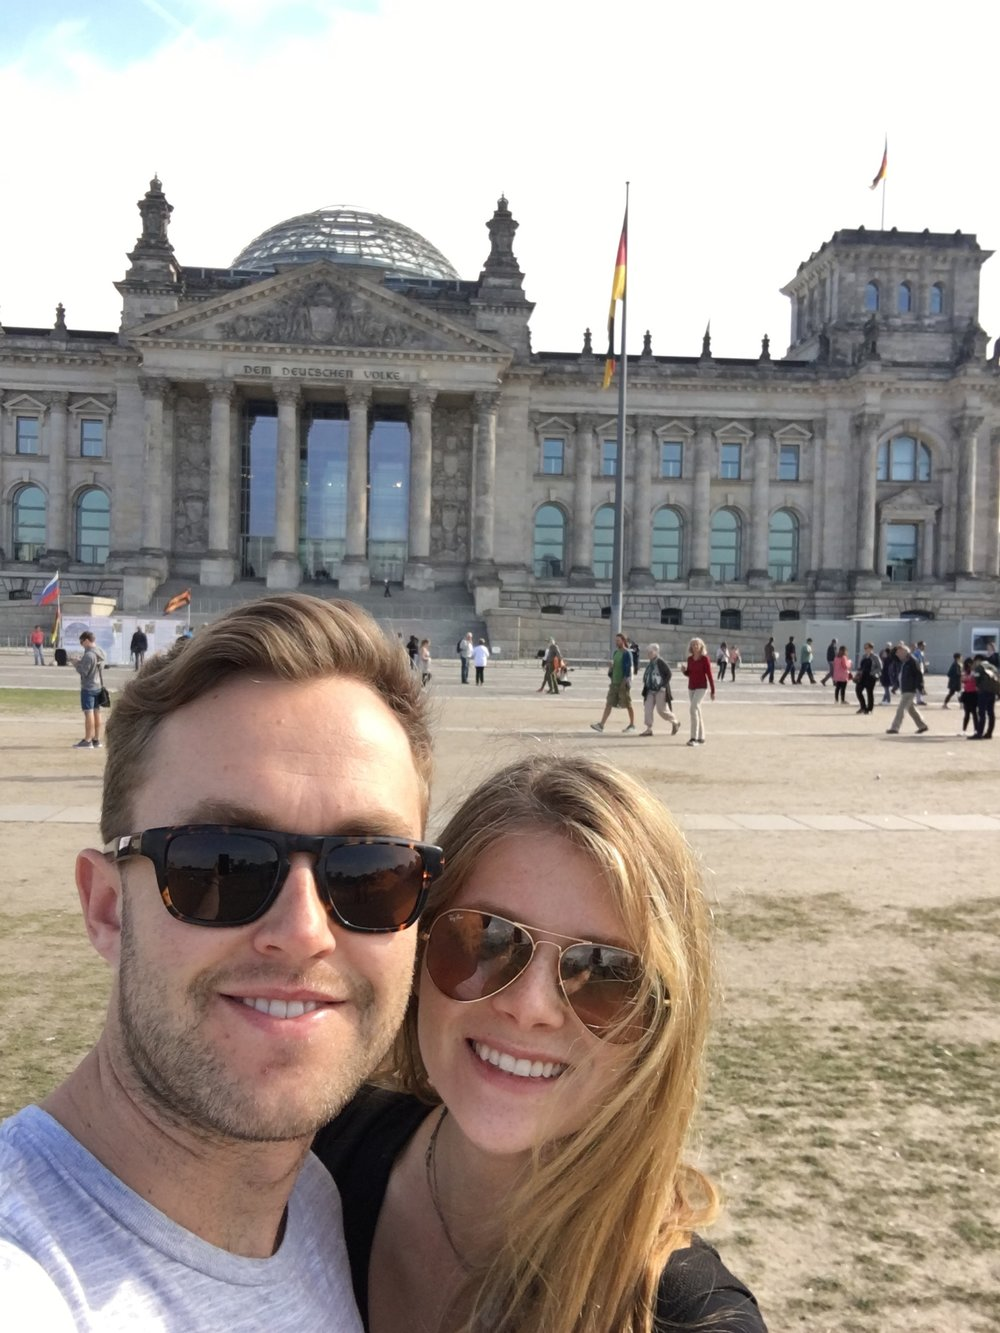 Dain and Sam at Reichstag Building, Berlin